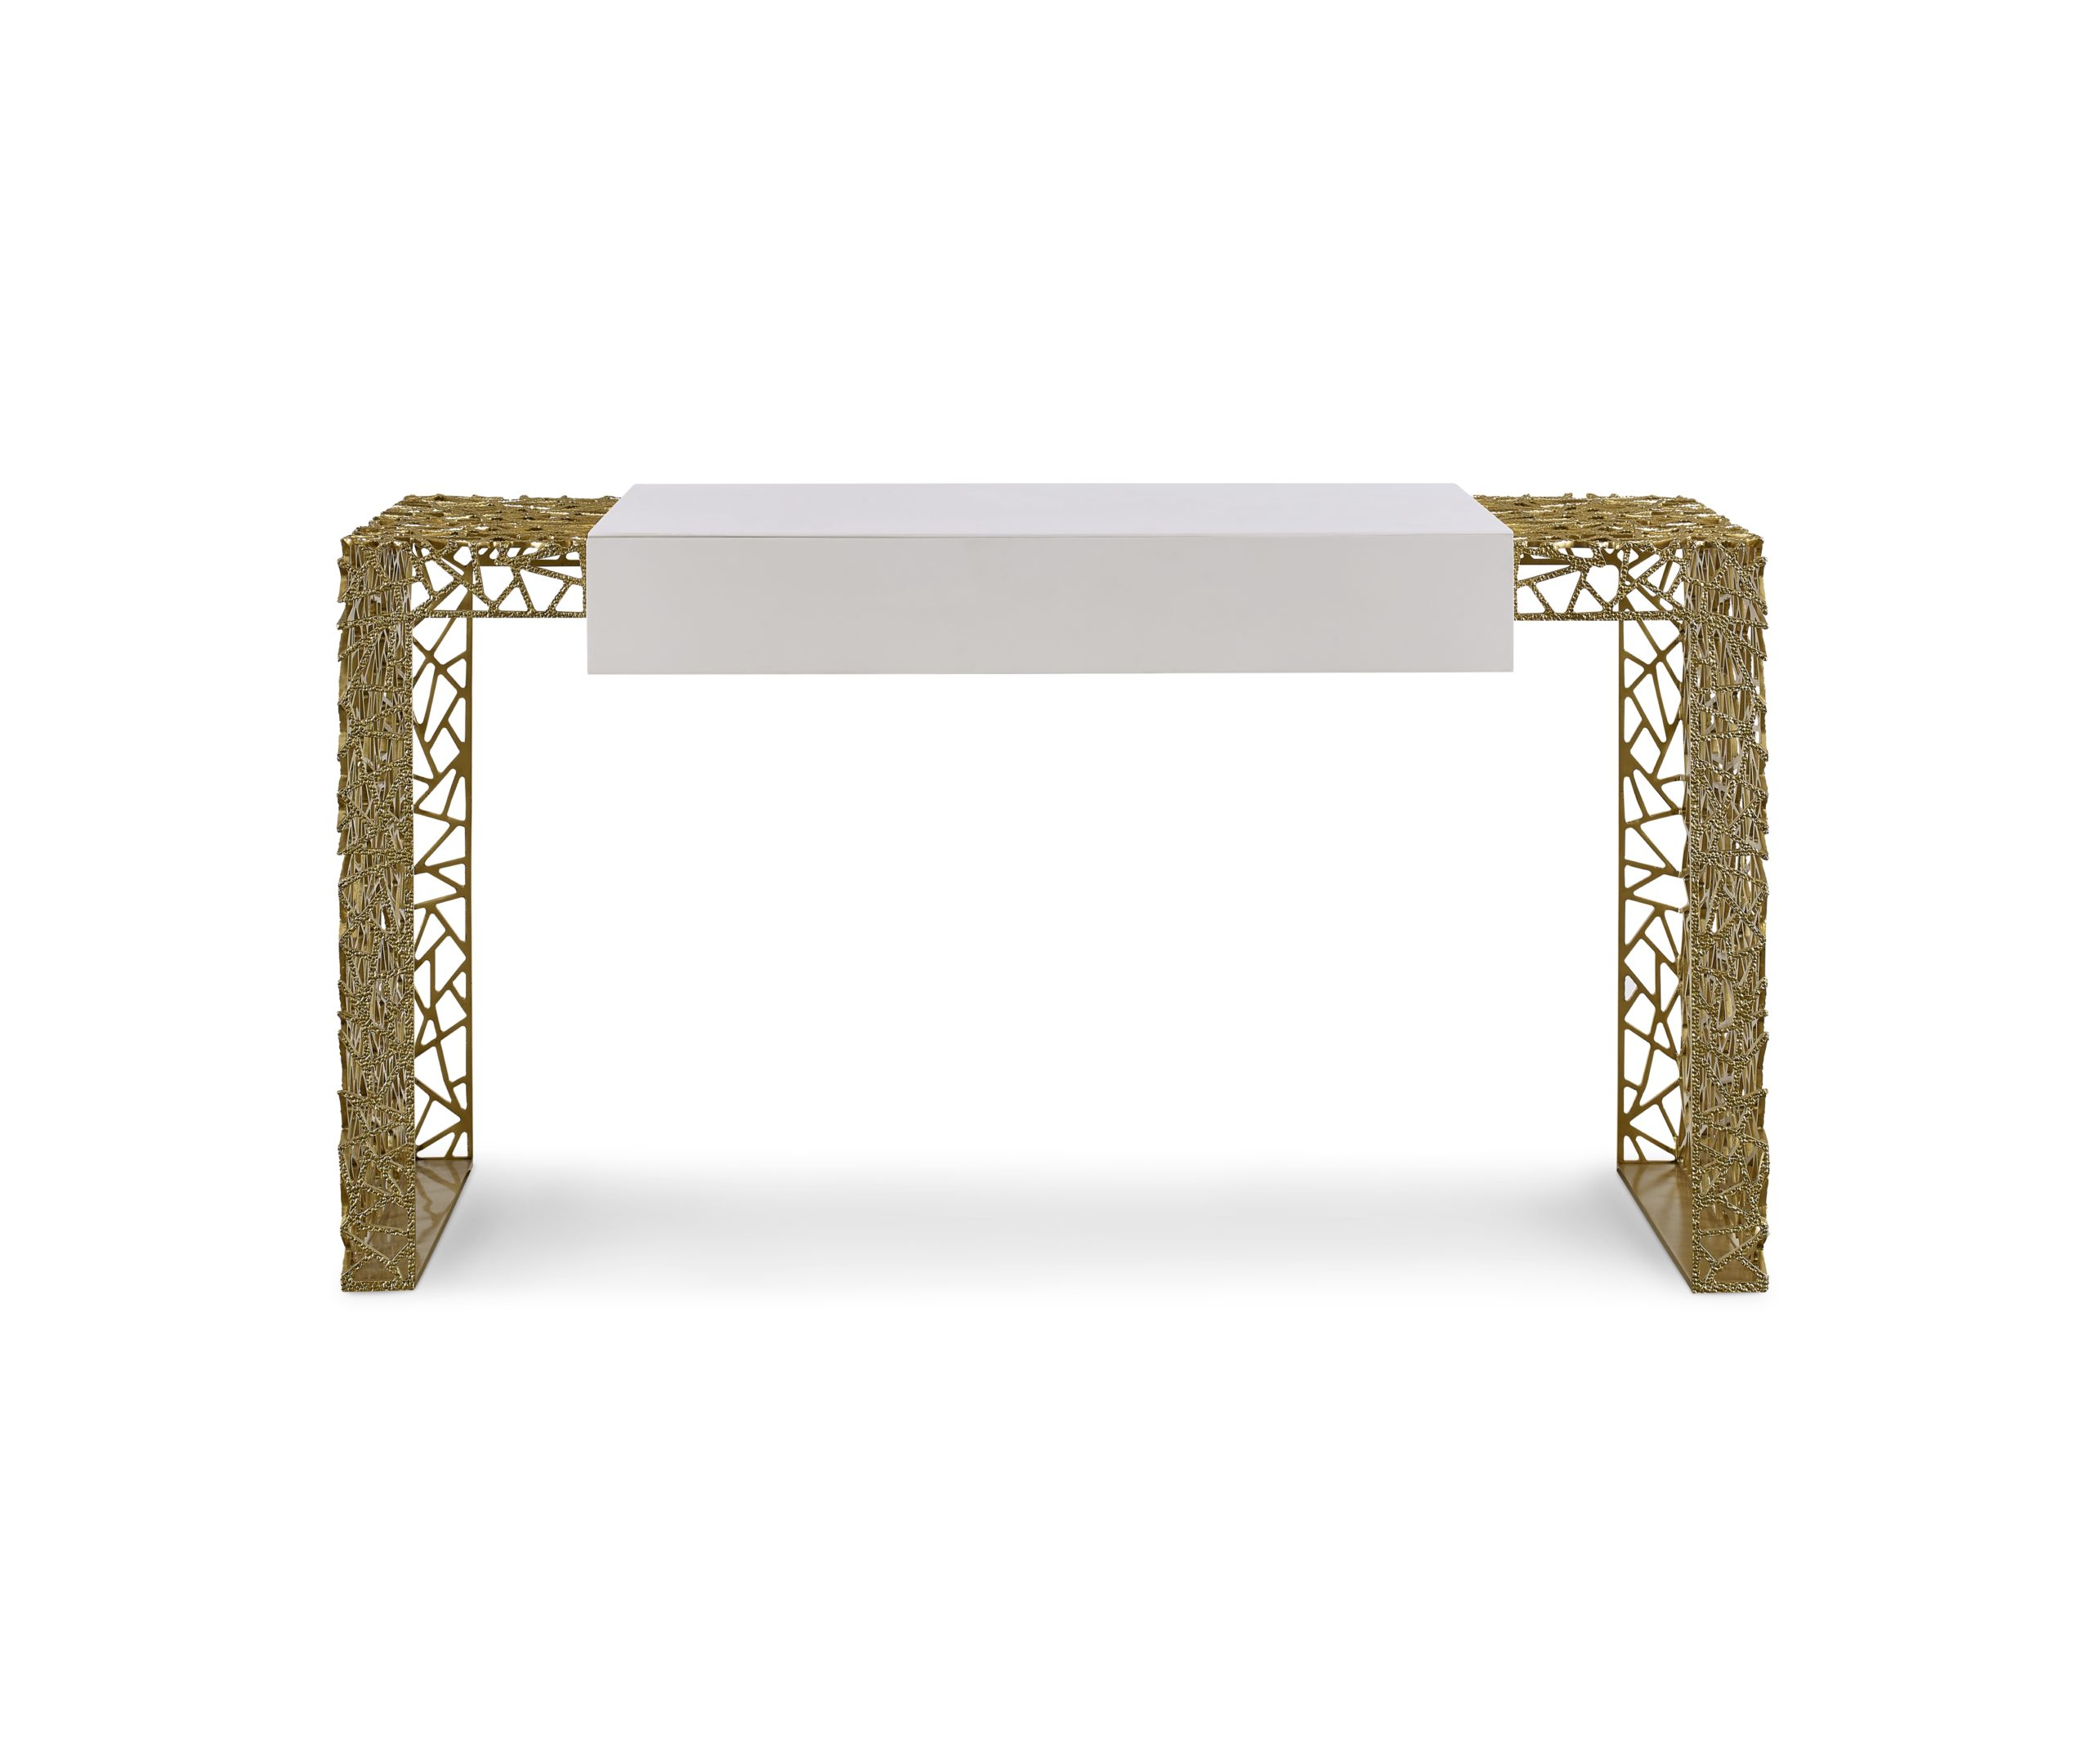 Baker_products_WNWN_fractal_desk_BAA3265_FRONT-scaled-1